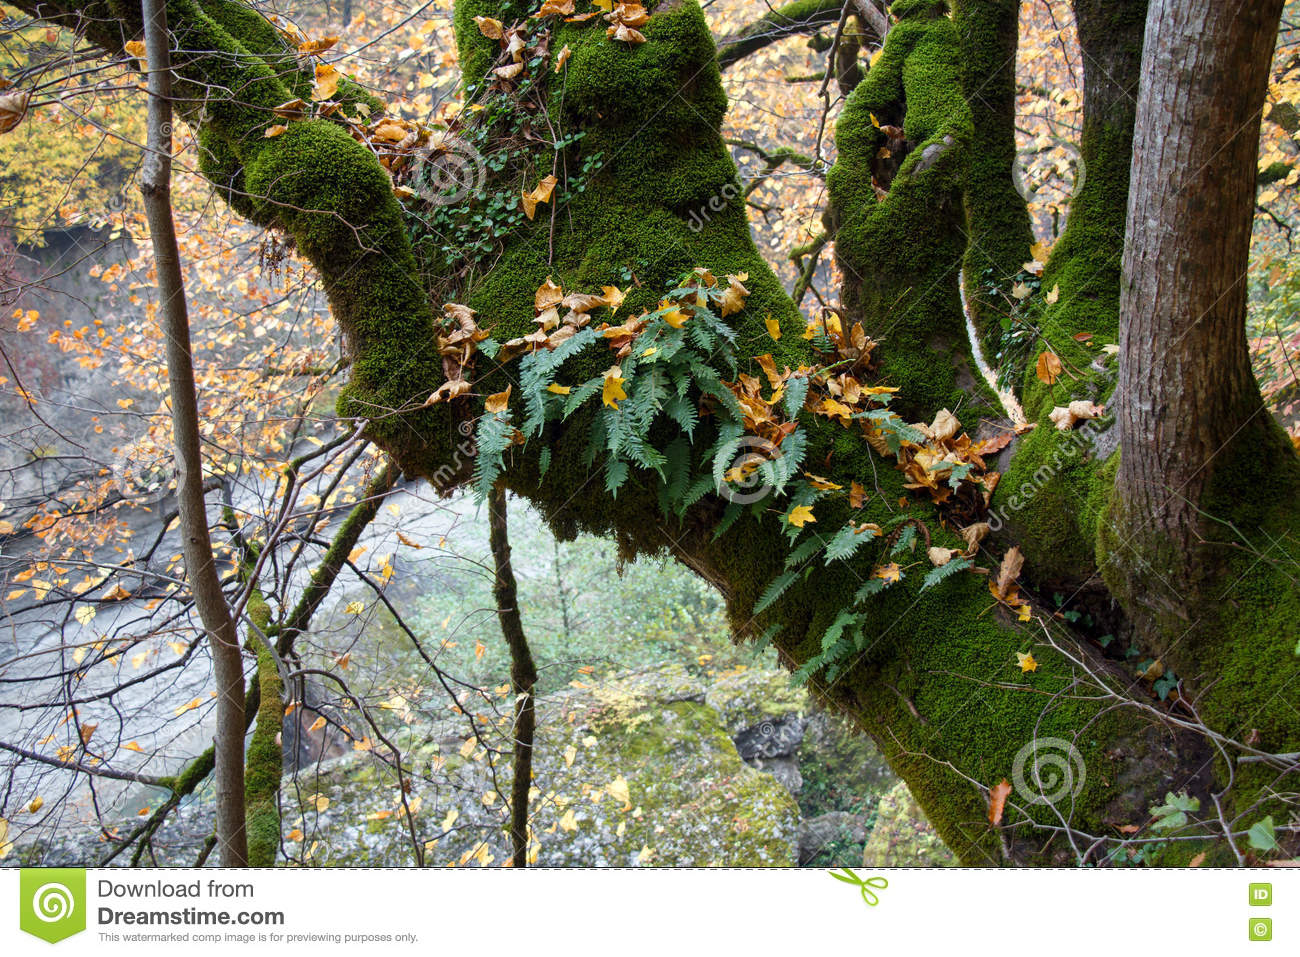 An epiphyte plants moss and fern growing on tree trunk stock photo image 77478637 - Flowers that grow on tree trunks ...